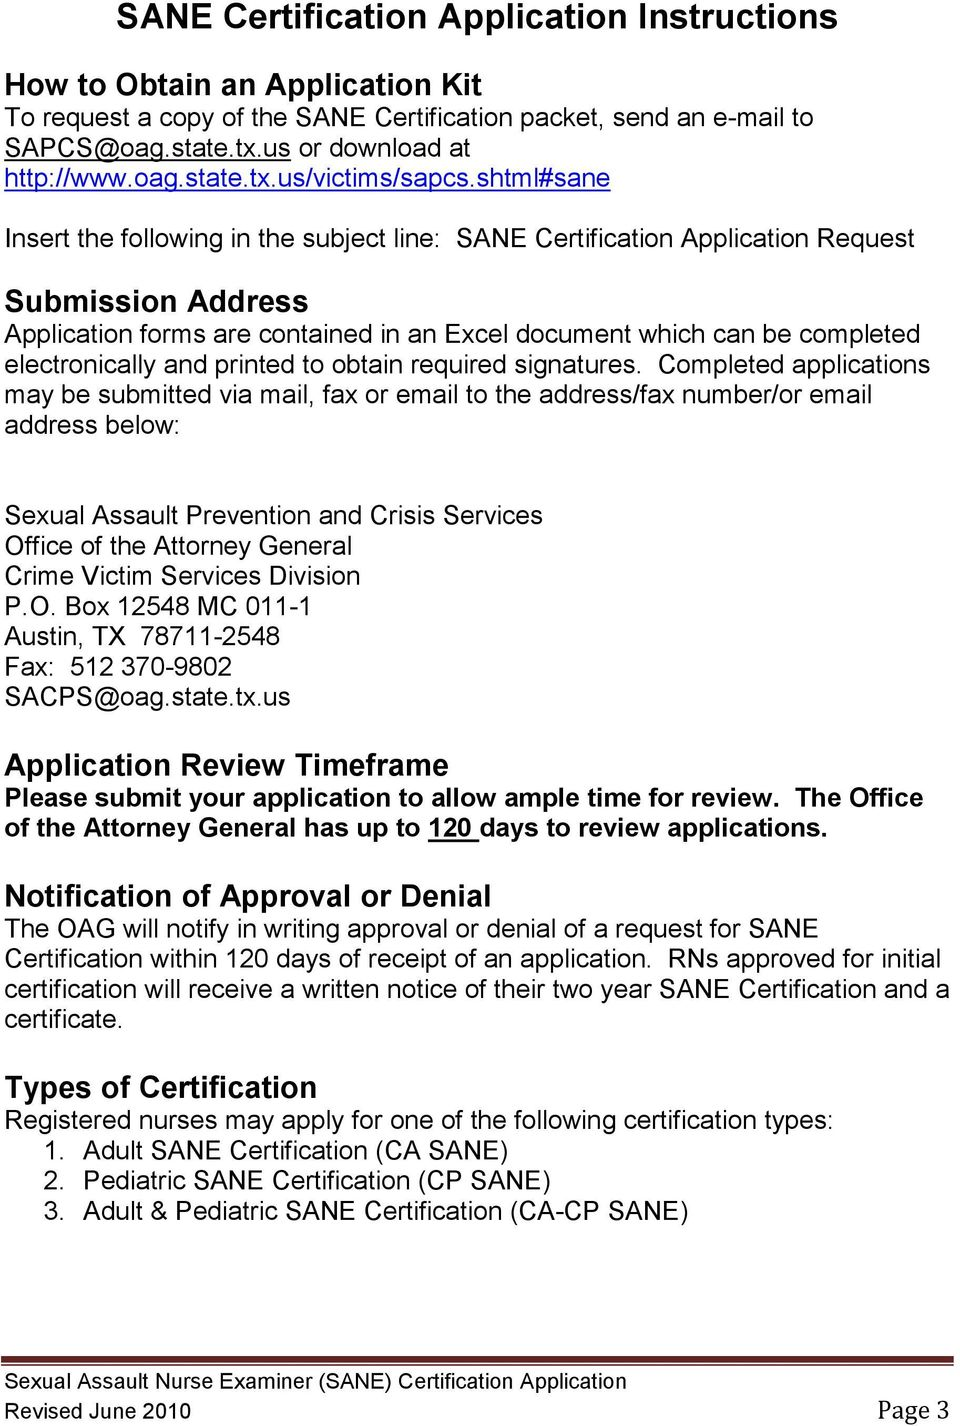 Sexual assault nurse examiners sane certification application electronically and printed to obtain required signatures 1betcityfo Images